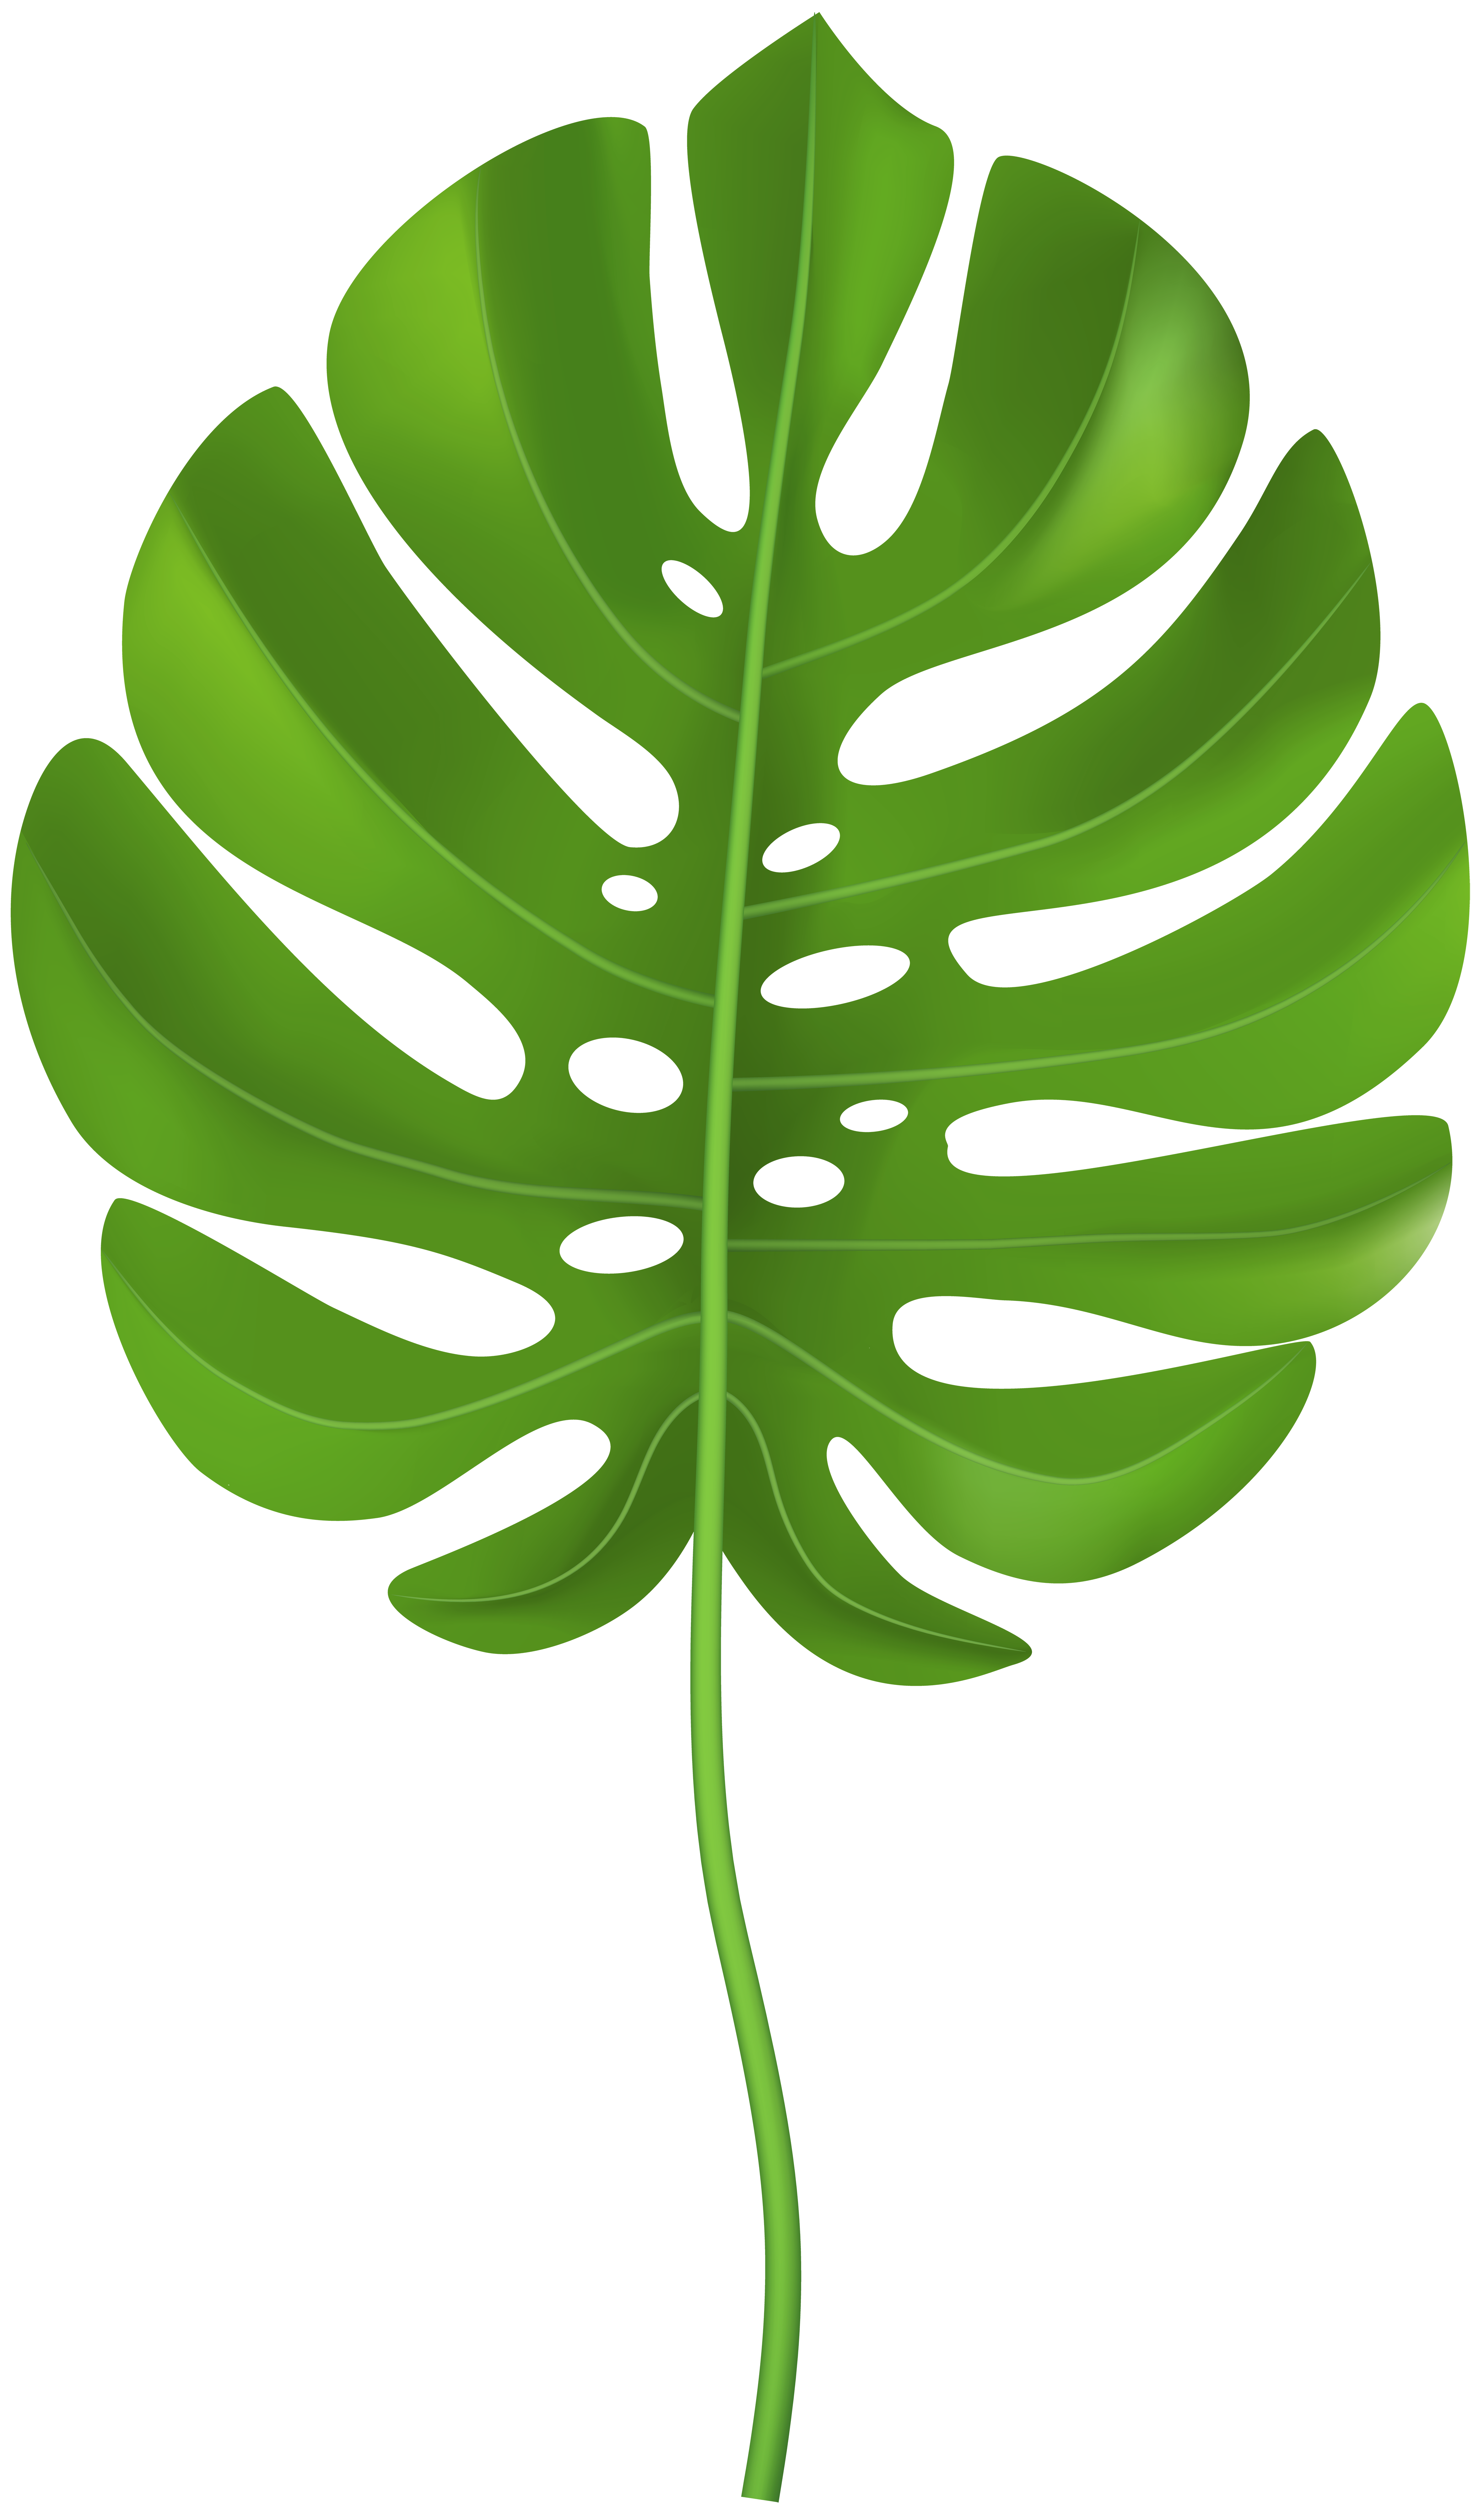 Hawaiian leaf clipart jpg freeuse stock tropical leaves clipart #212 | Dino themed Class | Leaves, Leaf ... jpg freeuse stock